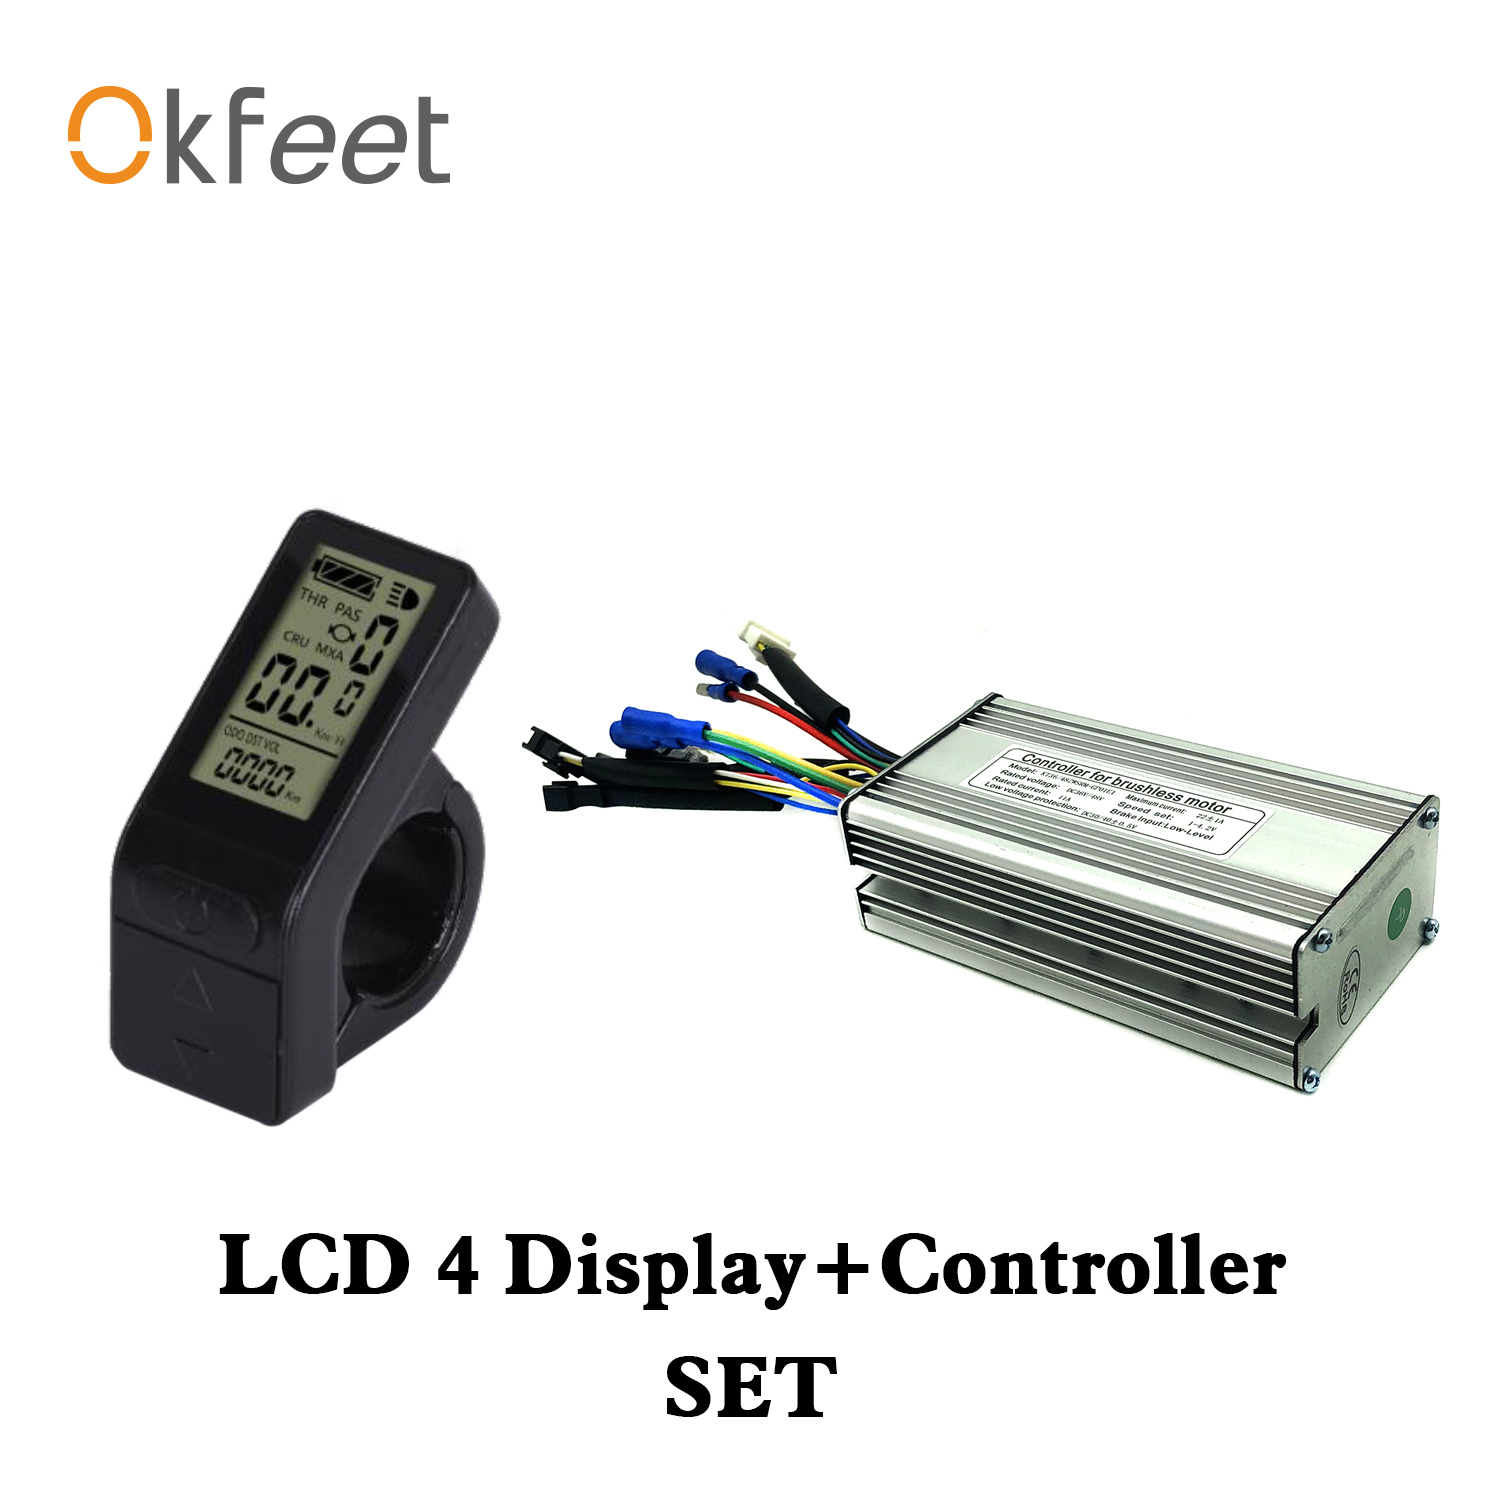 Okfeet KT Controller 250W 500W Motor 36V 48V 14A 22A Kunteng Controller LCD4 Display For Electric Bike Conversion Accessories